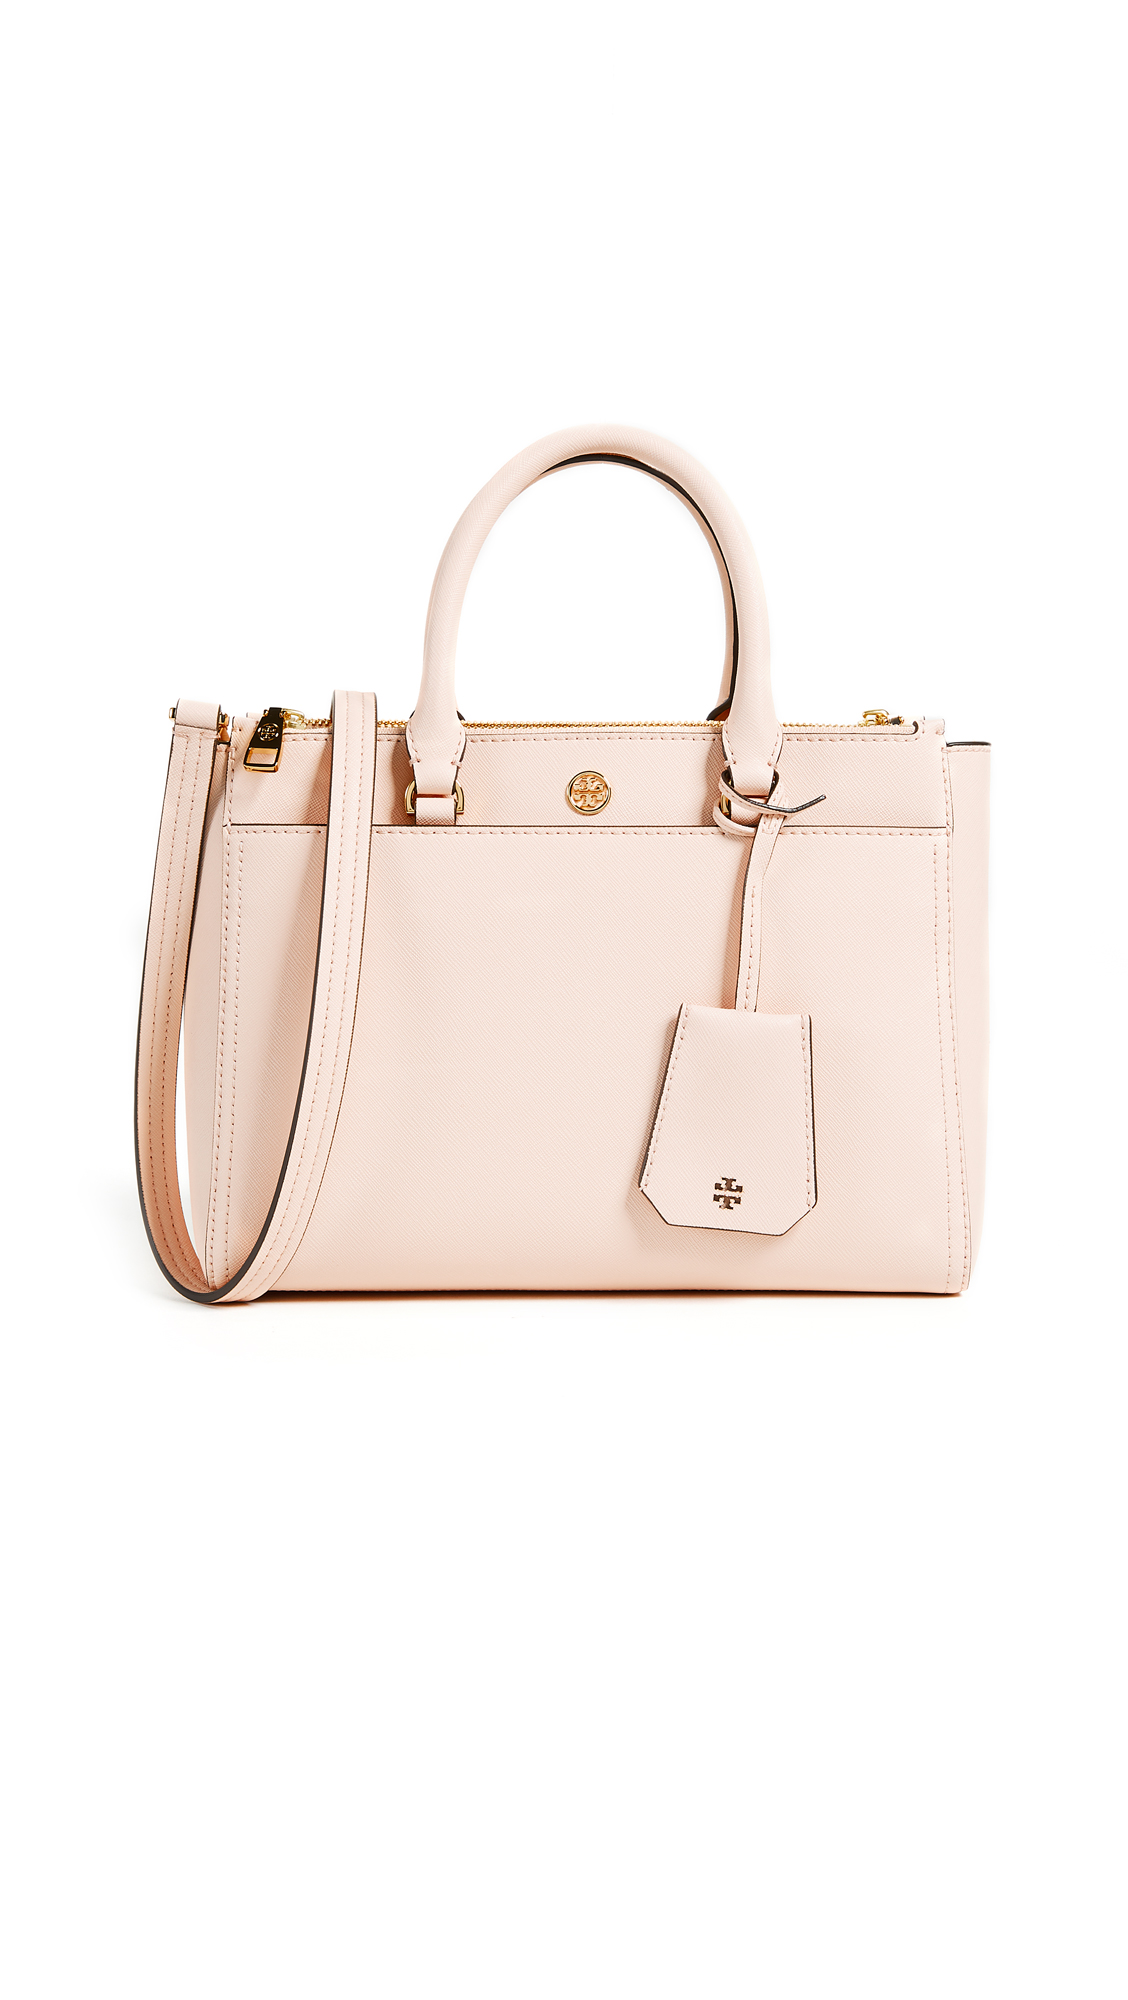 Tory Burch Robinson Small Double Zip Tote - Pale Apricot/Royal Navy